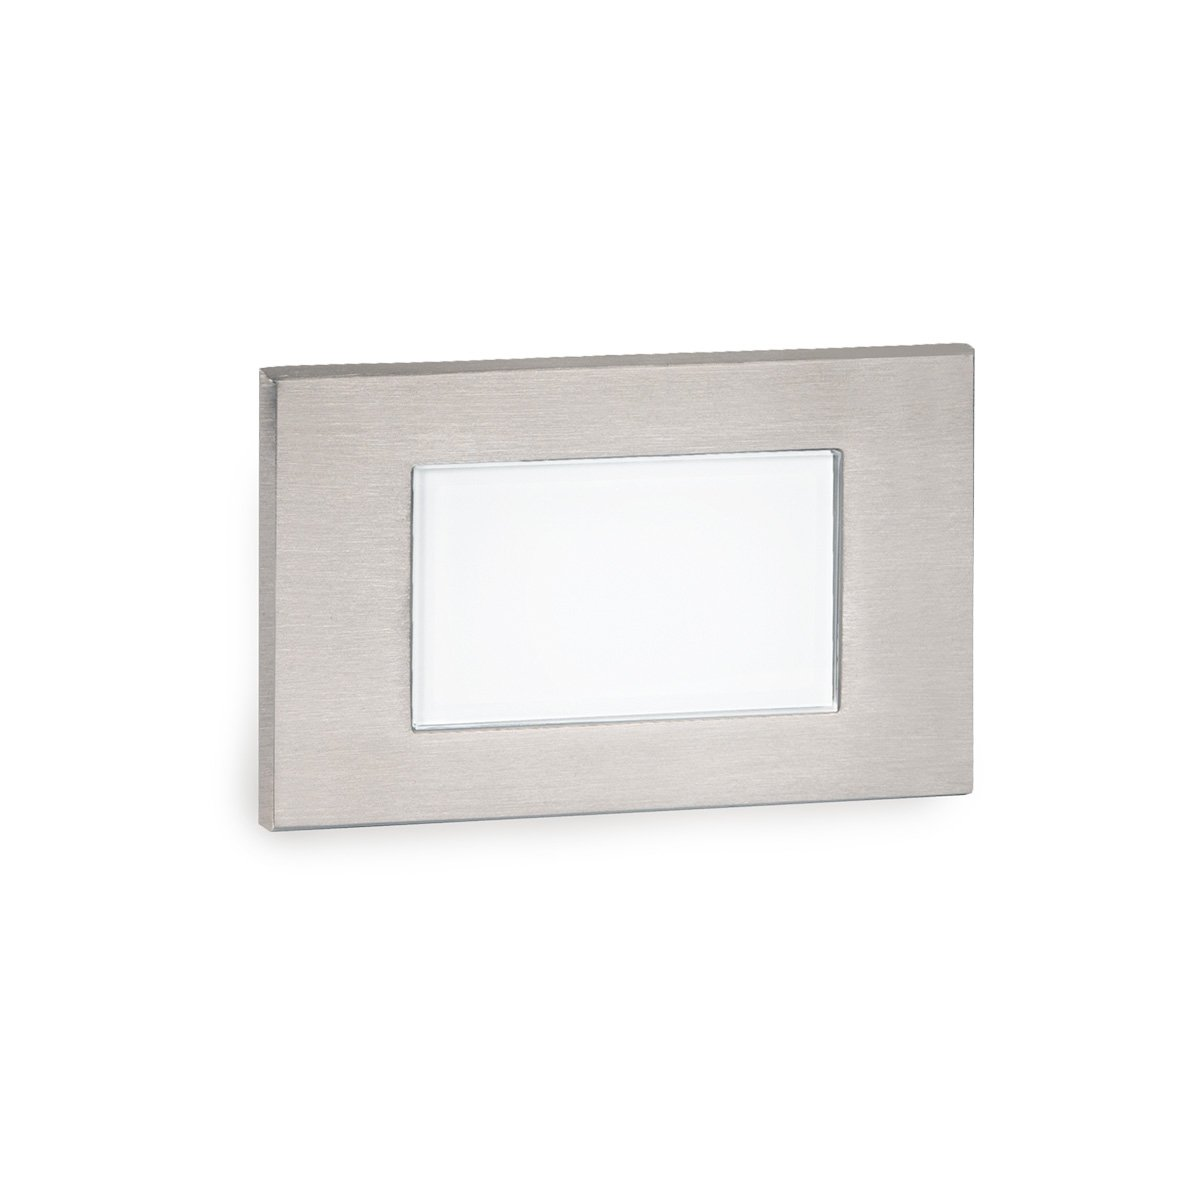 WAC Lighting 4071-27SS WAC Landscape LED Low Voltage Diffused Step and Wall Light 2700K in Stainless Steel